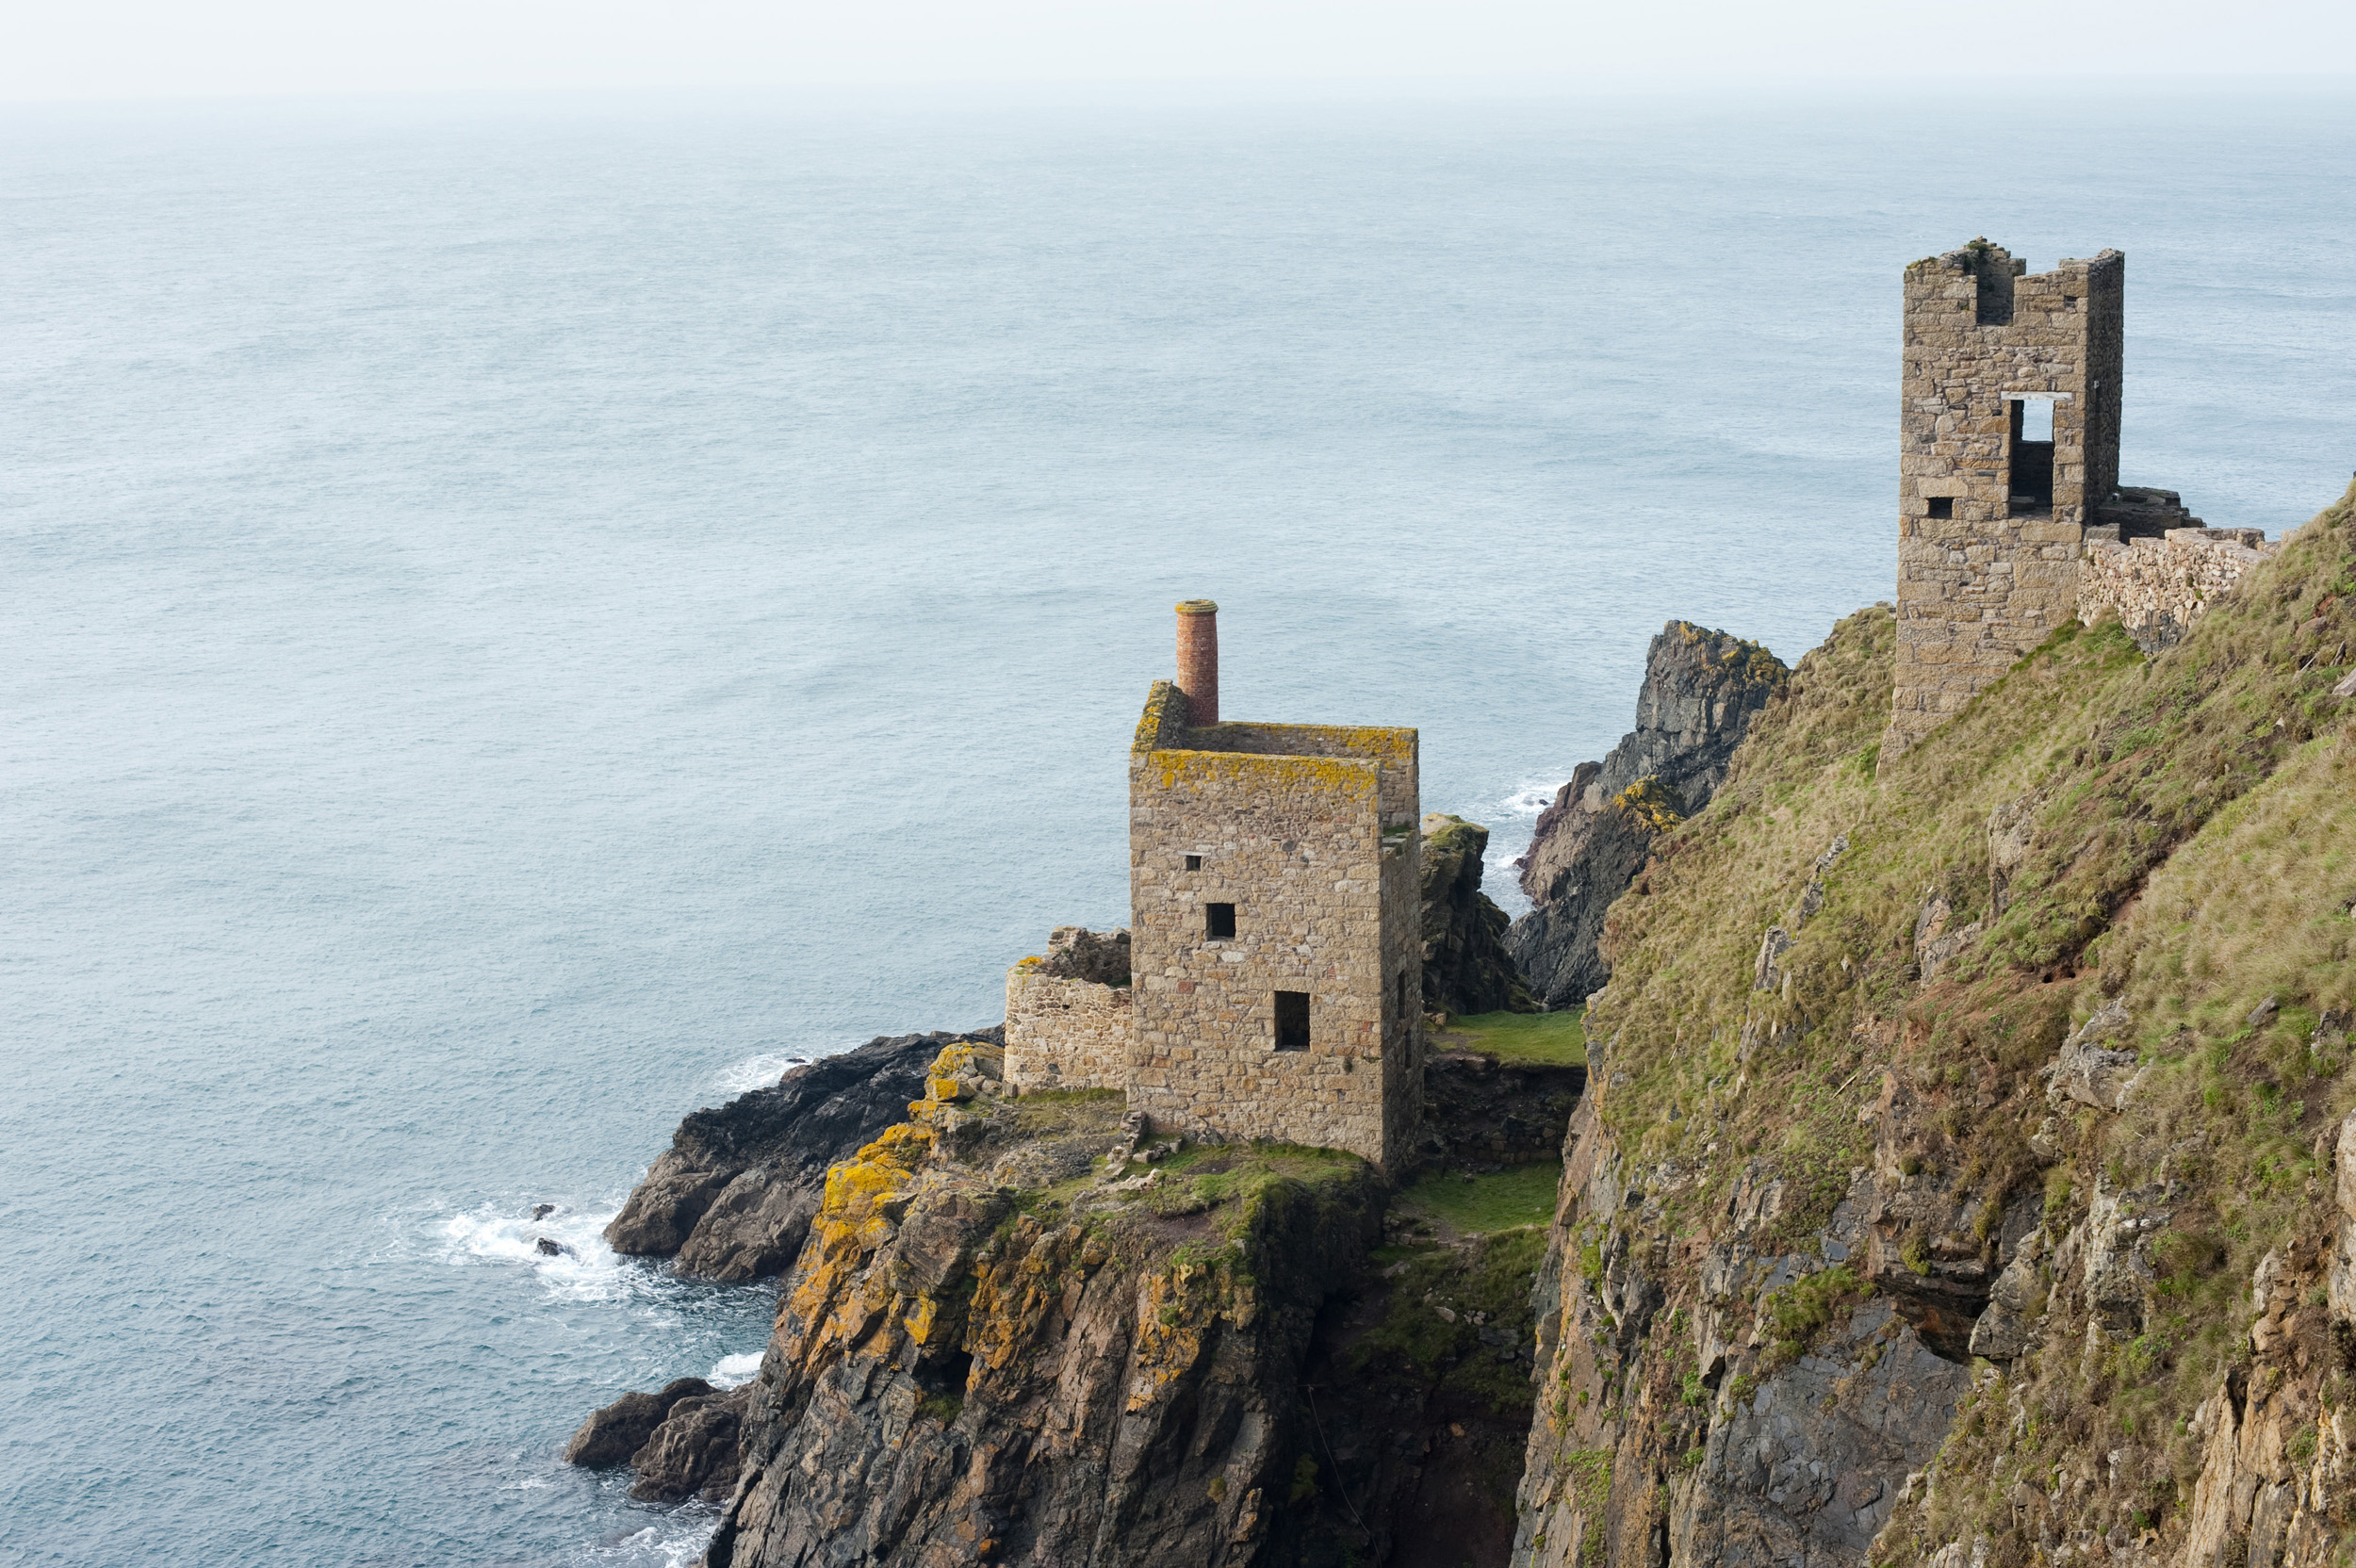 Remans of the crown mine at Botallack, Part of the Cornwall Mining Landscape World Heritage Site